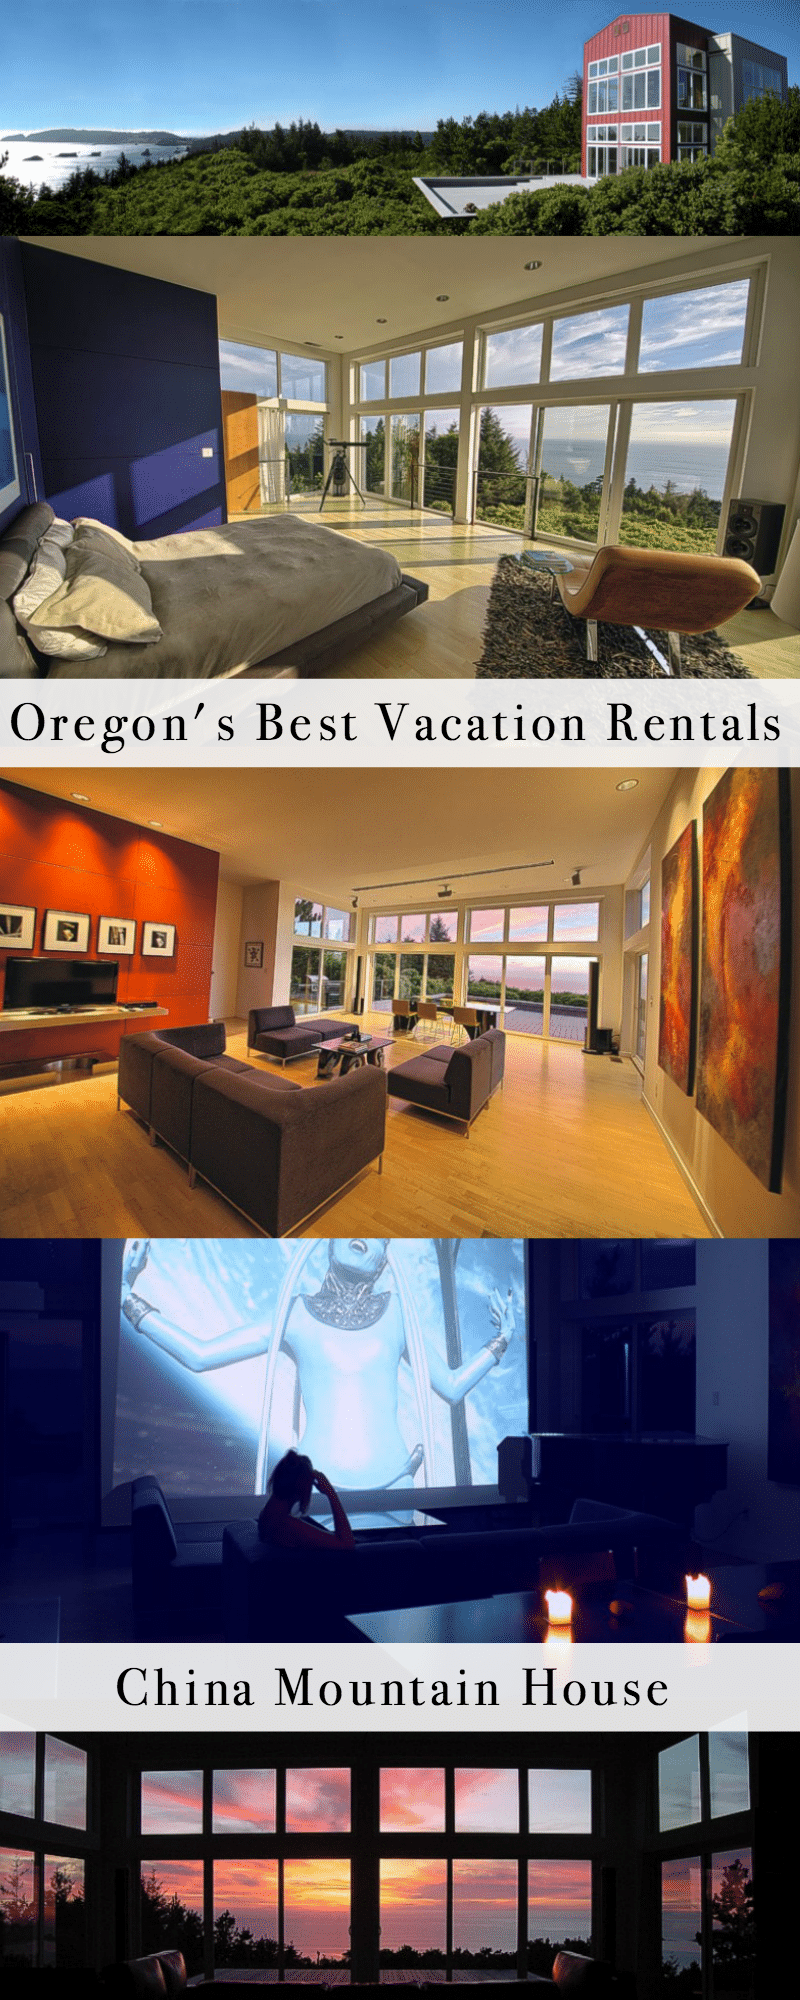 Oregon's Best Vacation Rentals: China Mountain House